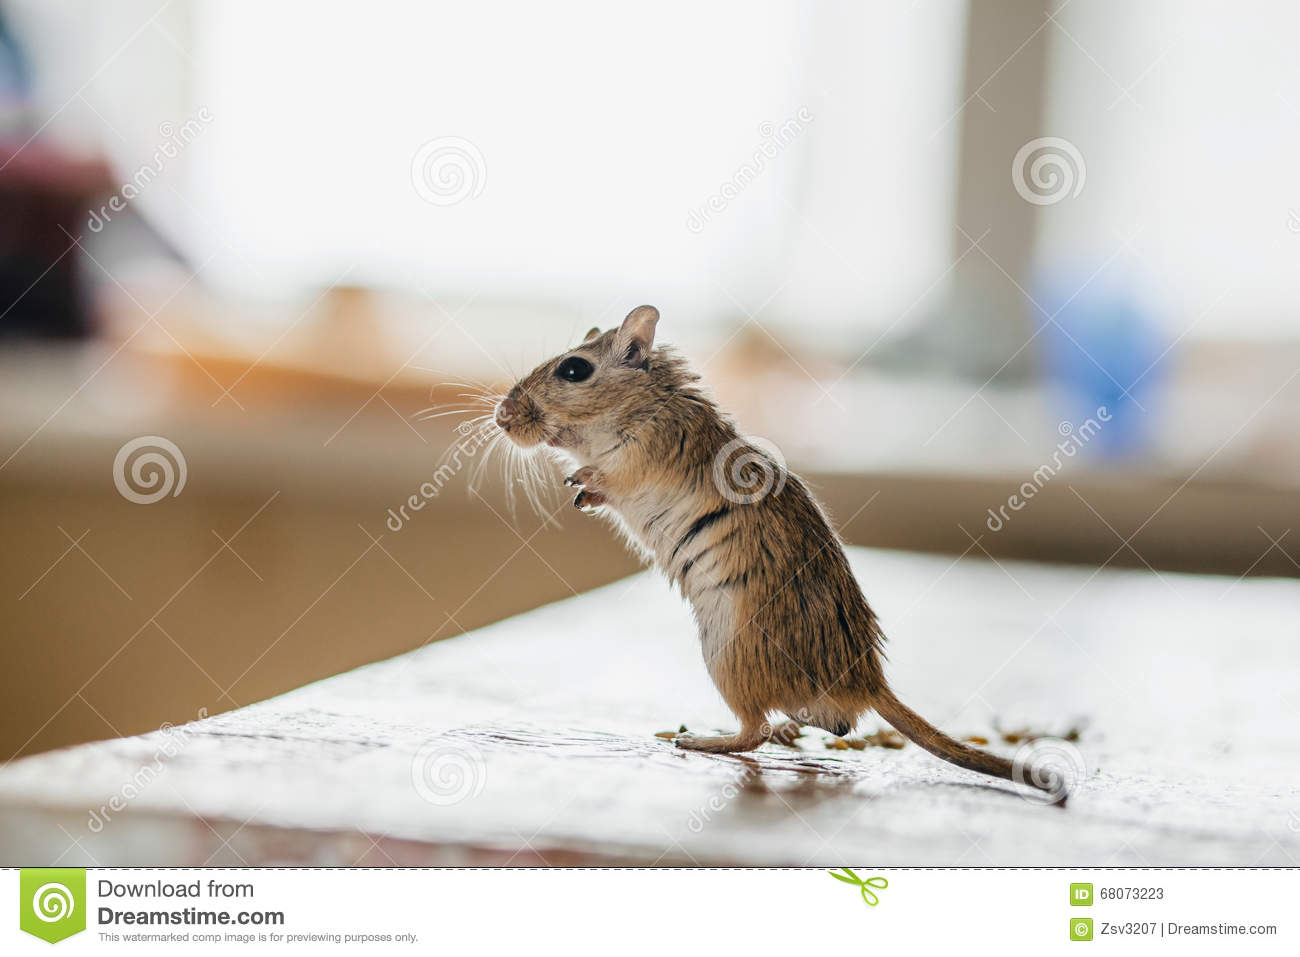 Gerbil Mouse Standing On The Kitchen Table Stock Photo - Image ...